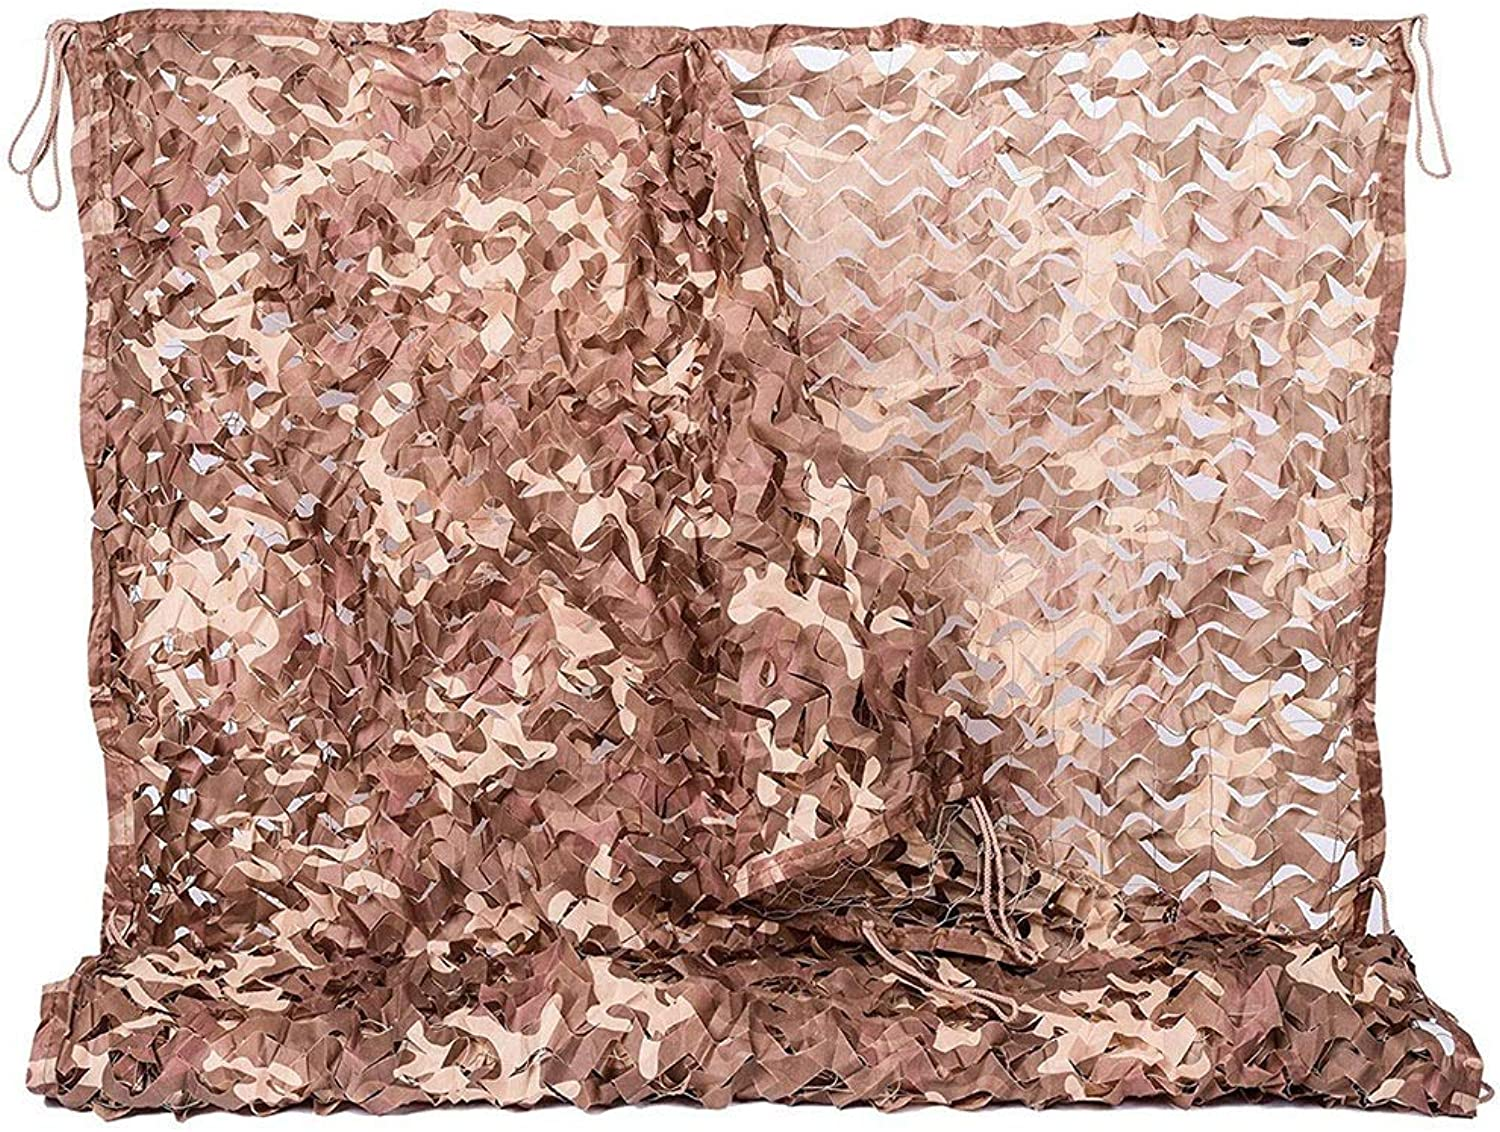 Virod Shade Sails Camo Netting, Camouflage Net Blinds Great for Camping Hunting Shooting Sunscreen Nets Light Weight Waterproof Garden Netting (Size   22×22ft 6.8×6.8m)